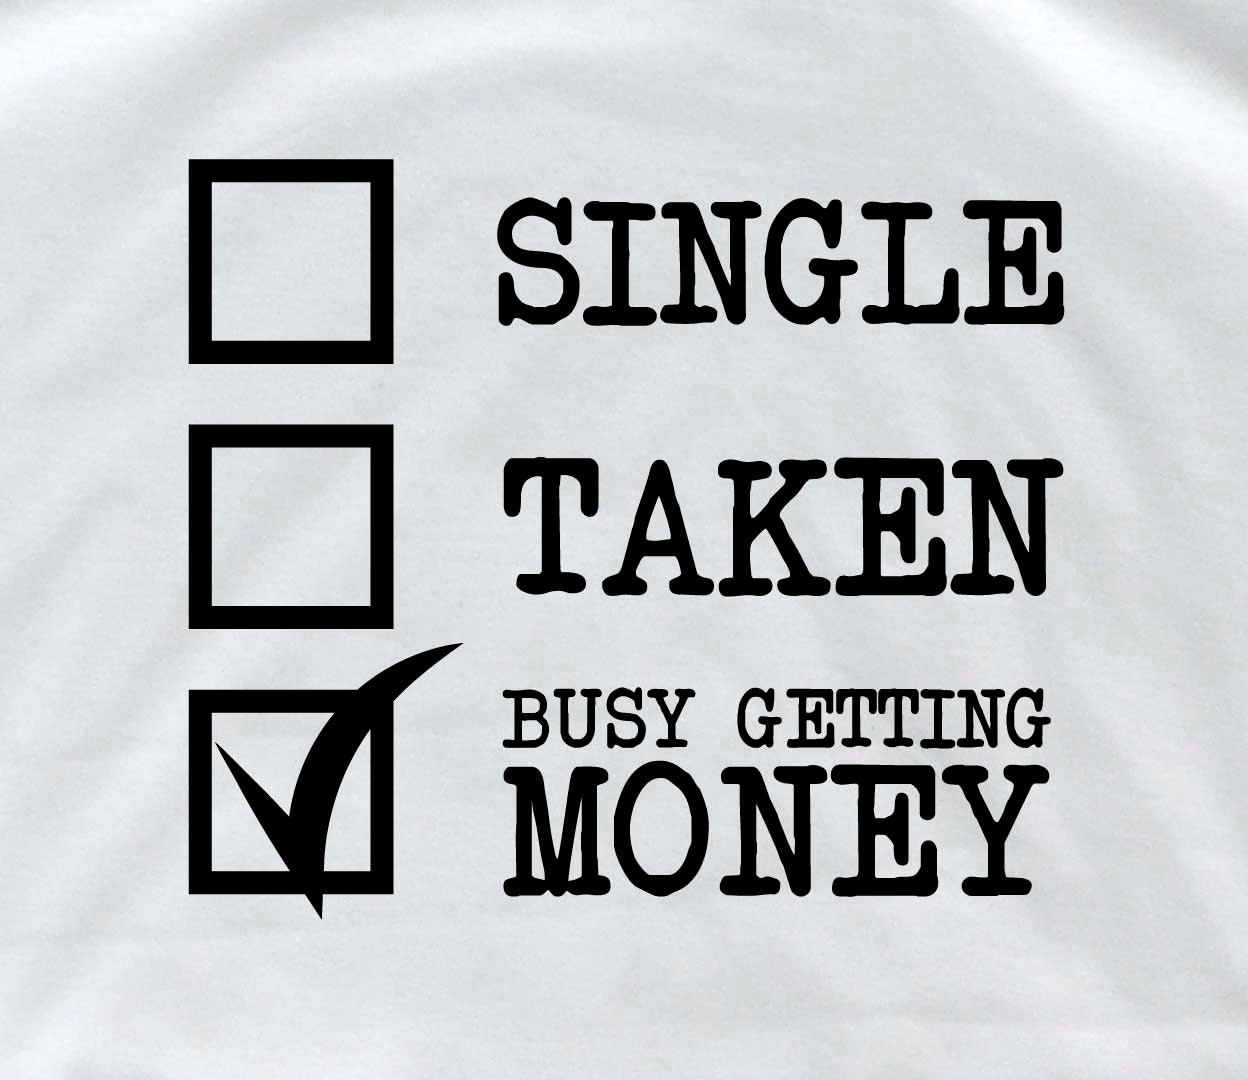 Get Money Quotes Endearing Single Taken Busy Getting Money Personalized T Shirt Single T